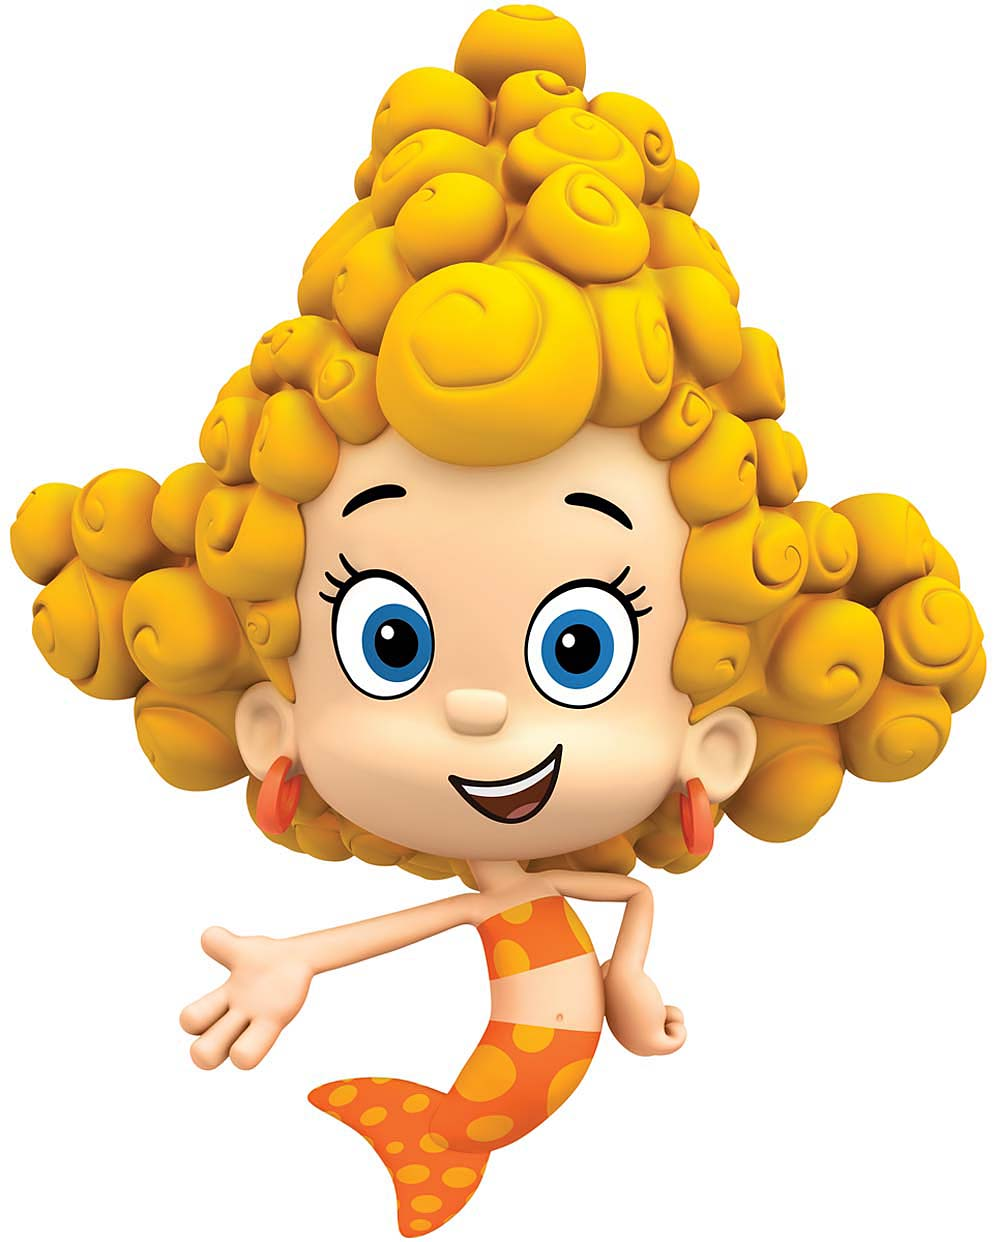 Bubble guppies cast photos Welcome Bubble Guppies Live! Ready to Rock!